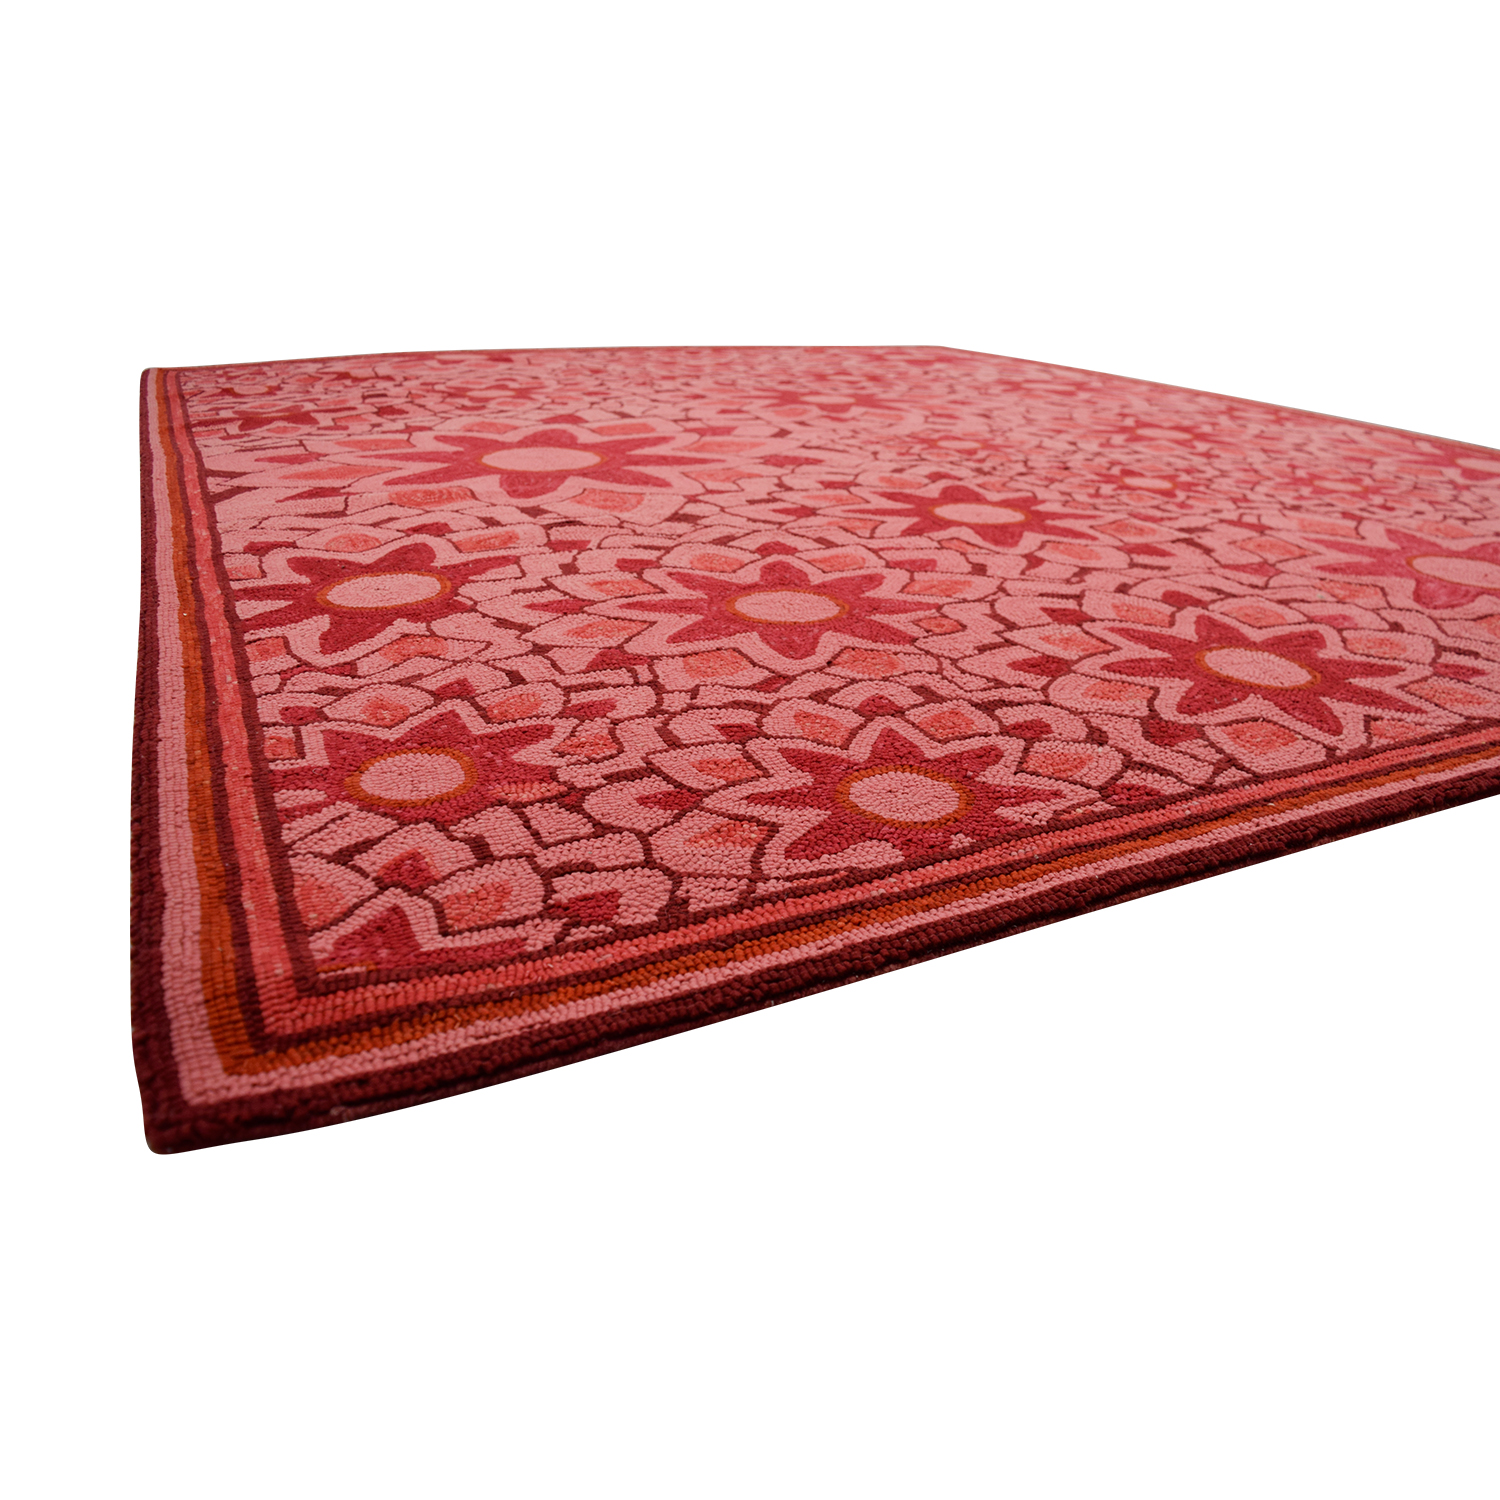 Obeetee Obeetee Hand Hooked Red Floral Rug